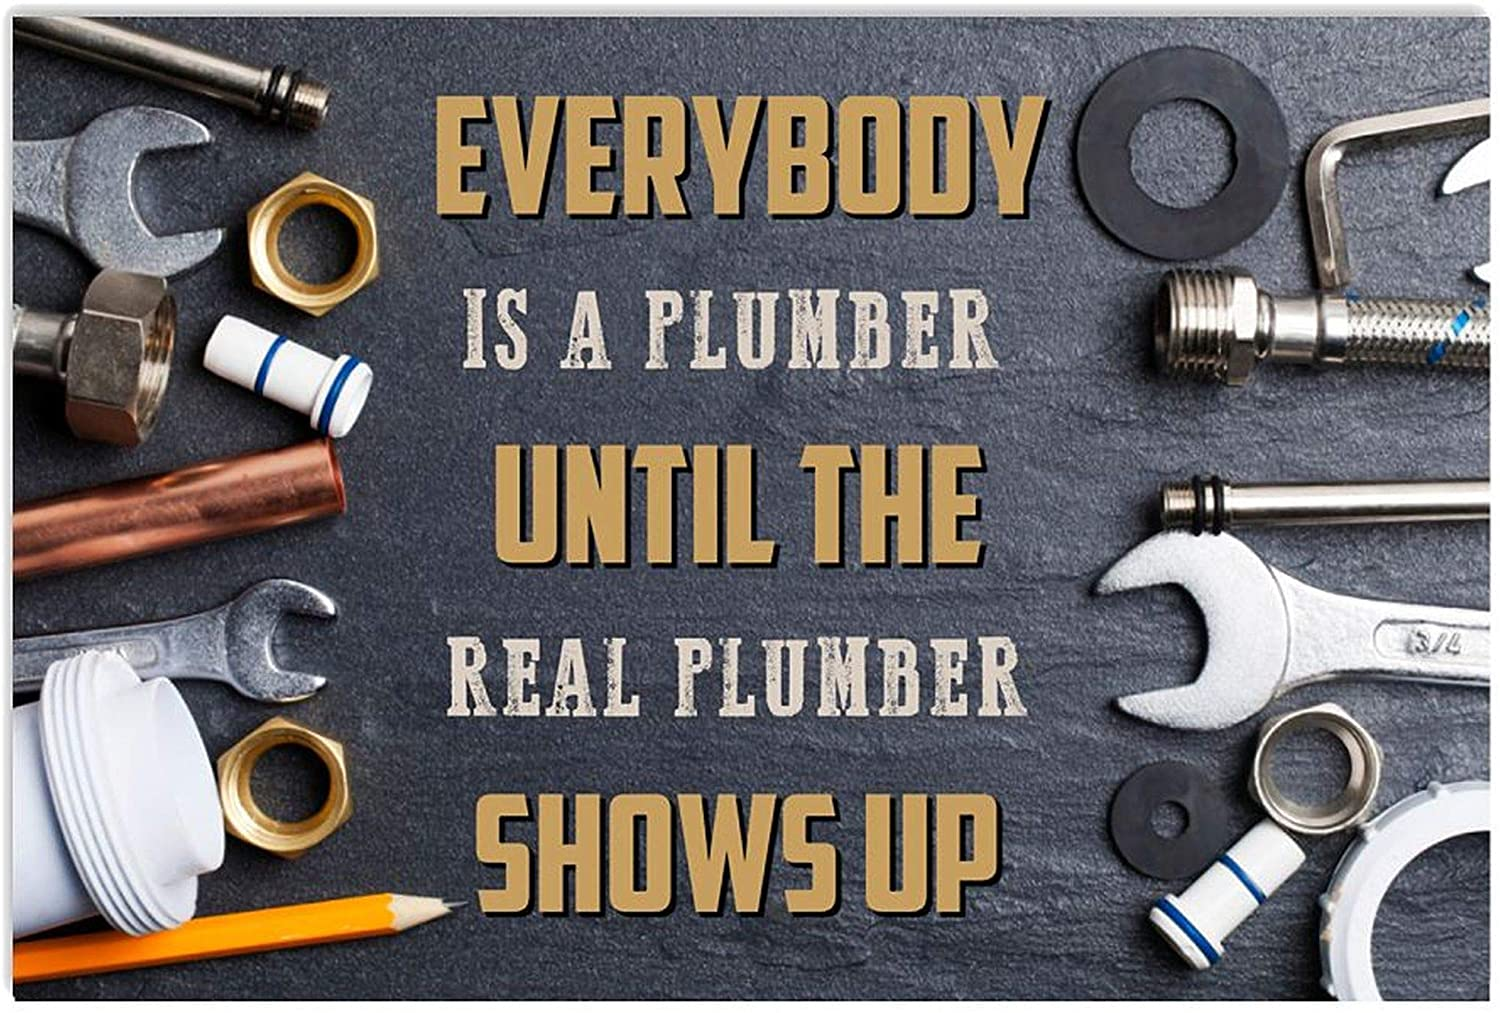 ANDIEZ Everybody is A Plumber Real Plumber Shows Up Poster